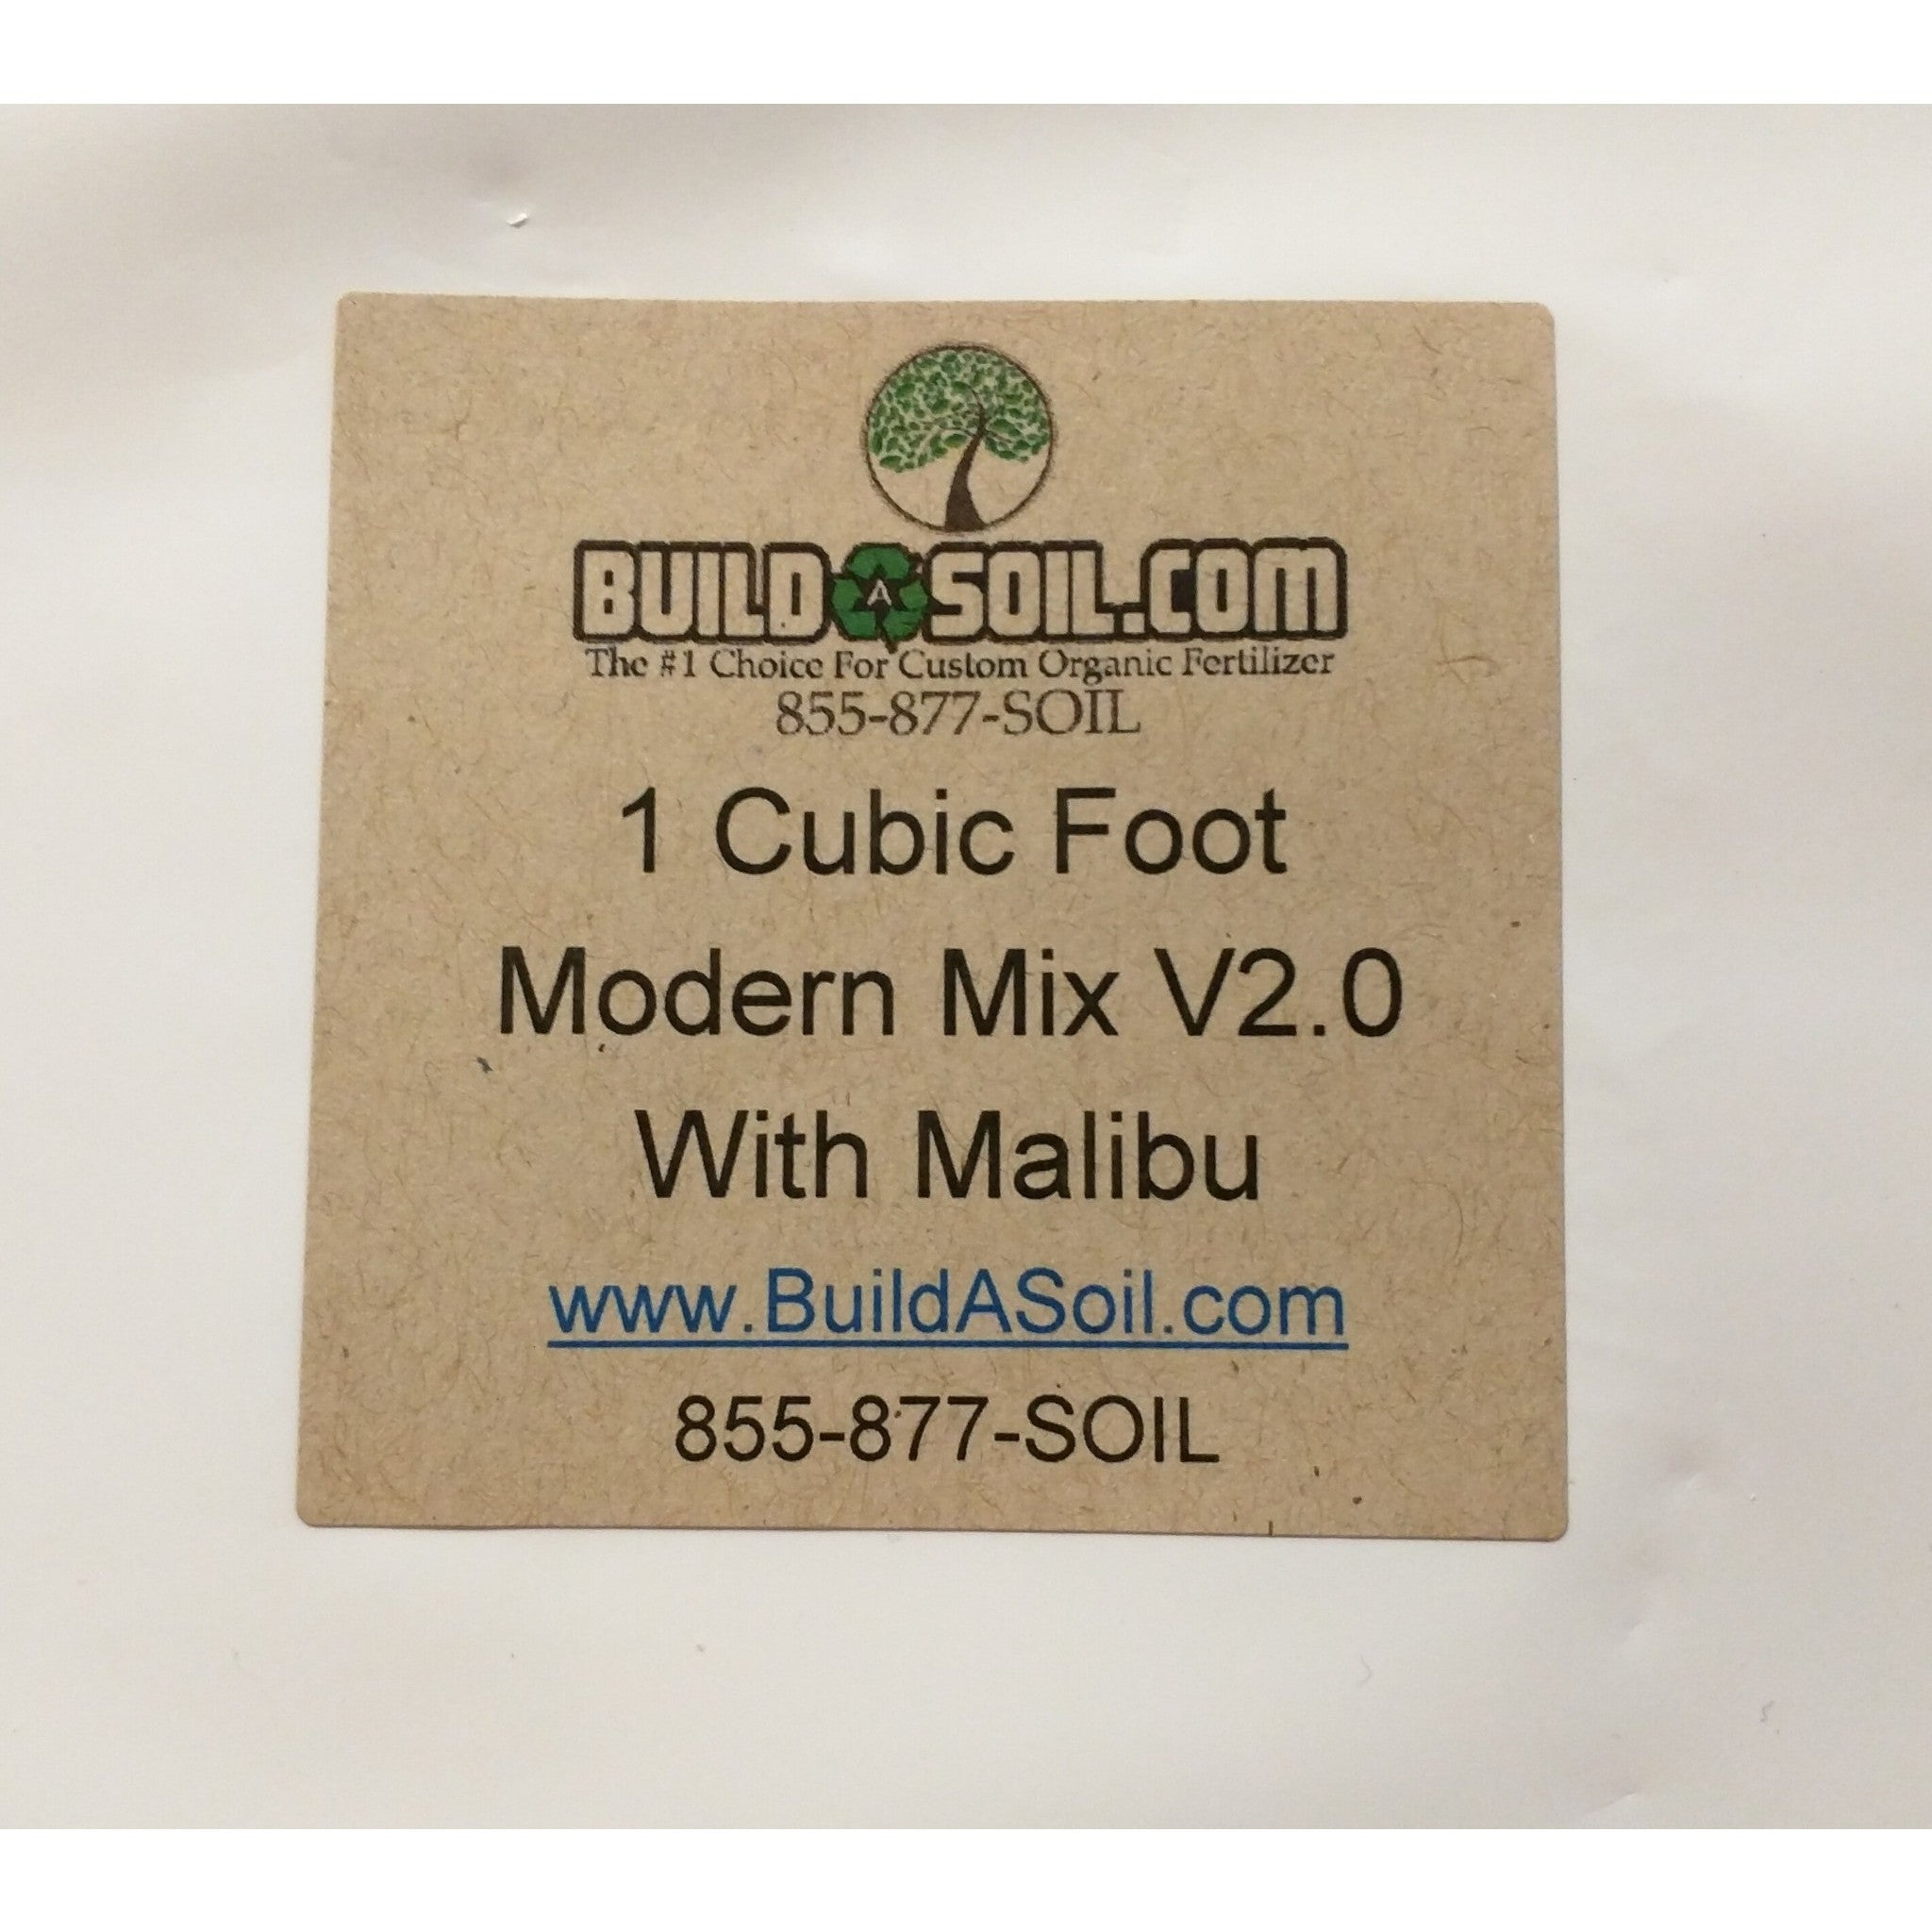 Newest Products Page 6 - BuildASoil